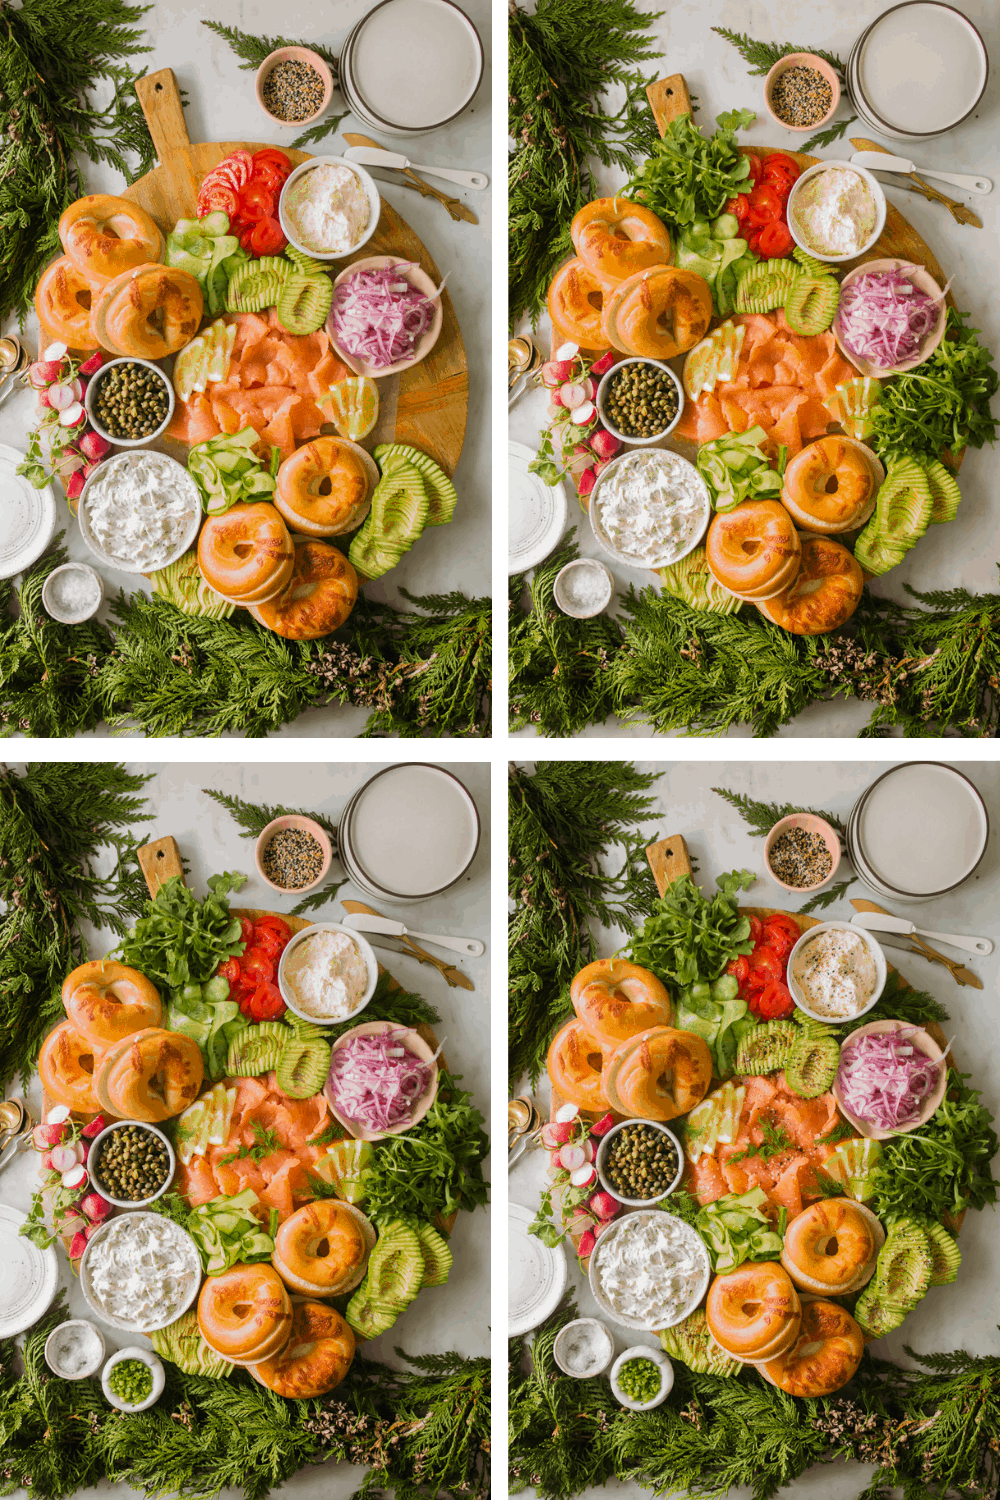 4 images of adding garnishes to a large salmon and bagel board